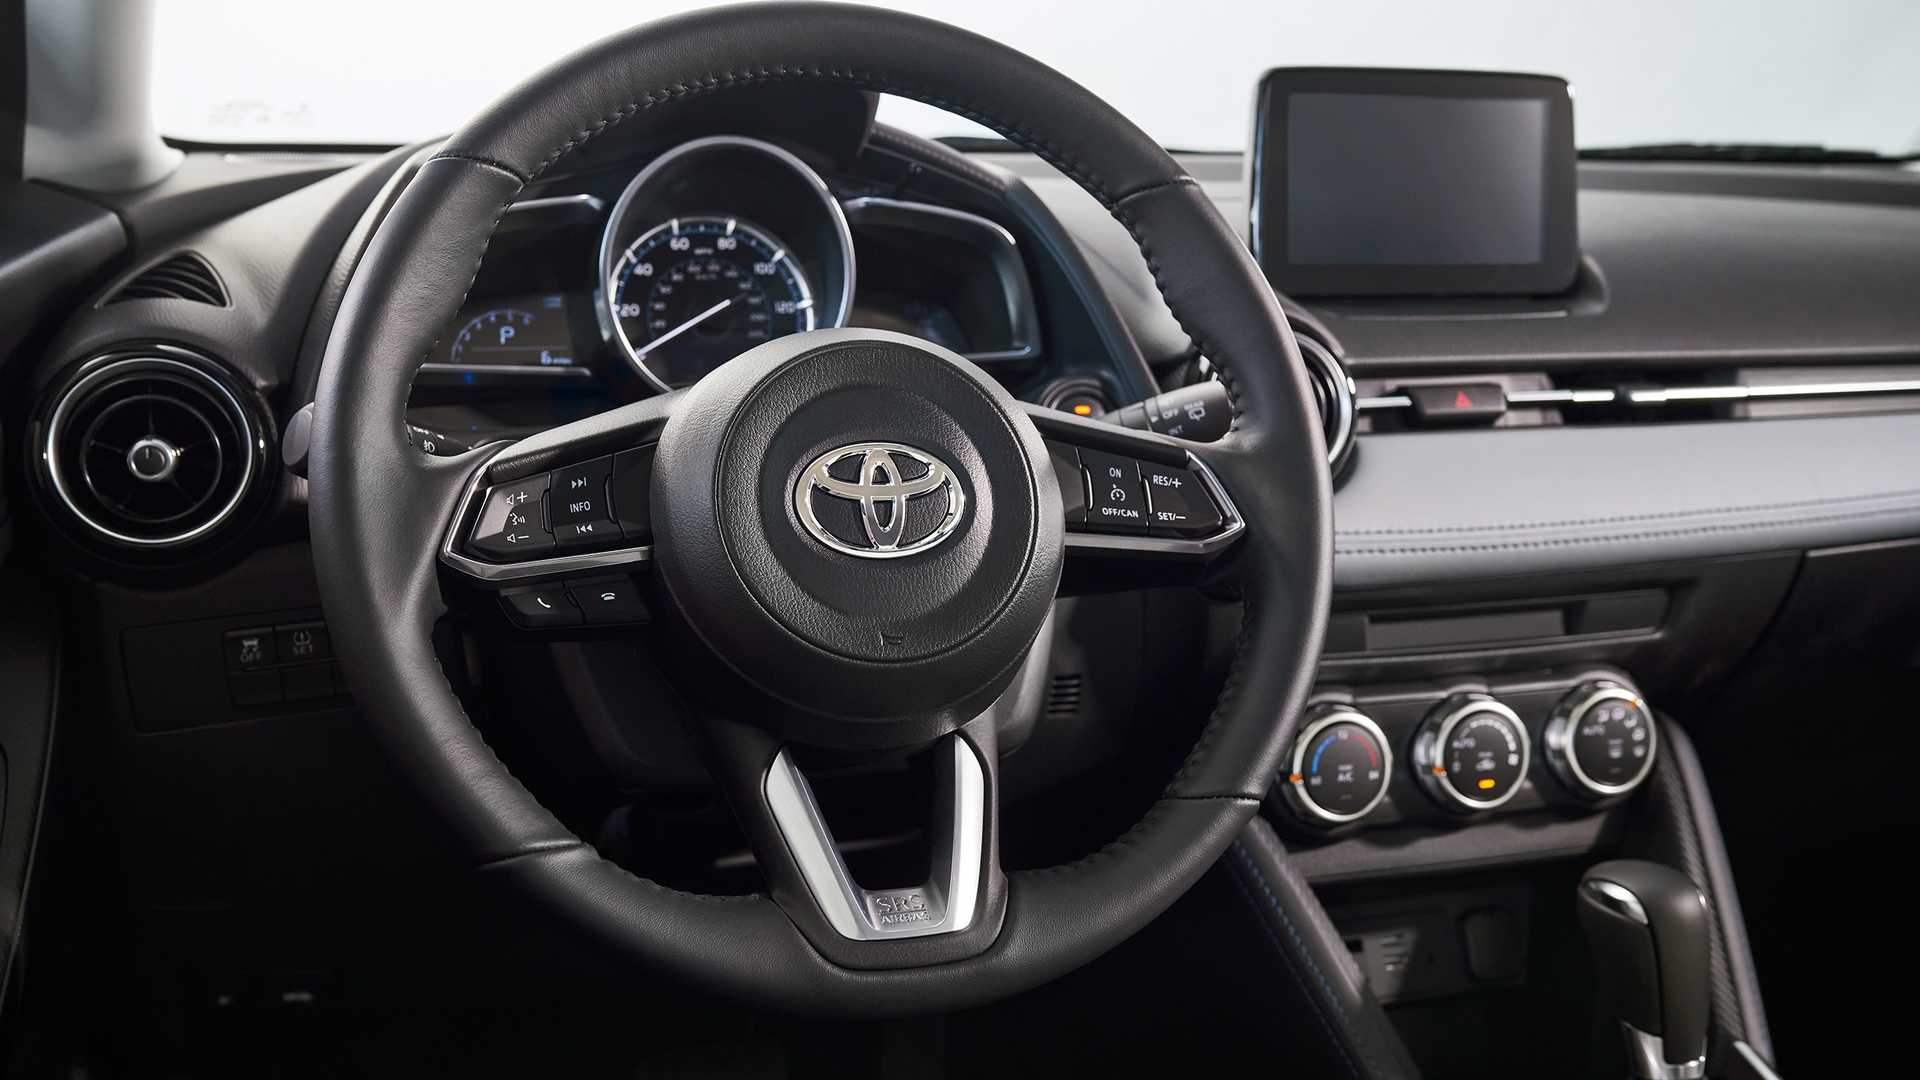 2020 Toyota Yaris Hatchback Interior Steering Wheel Wallpaper (9)